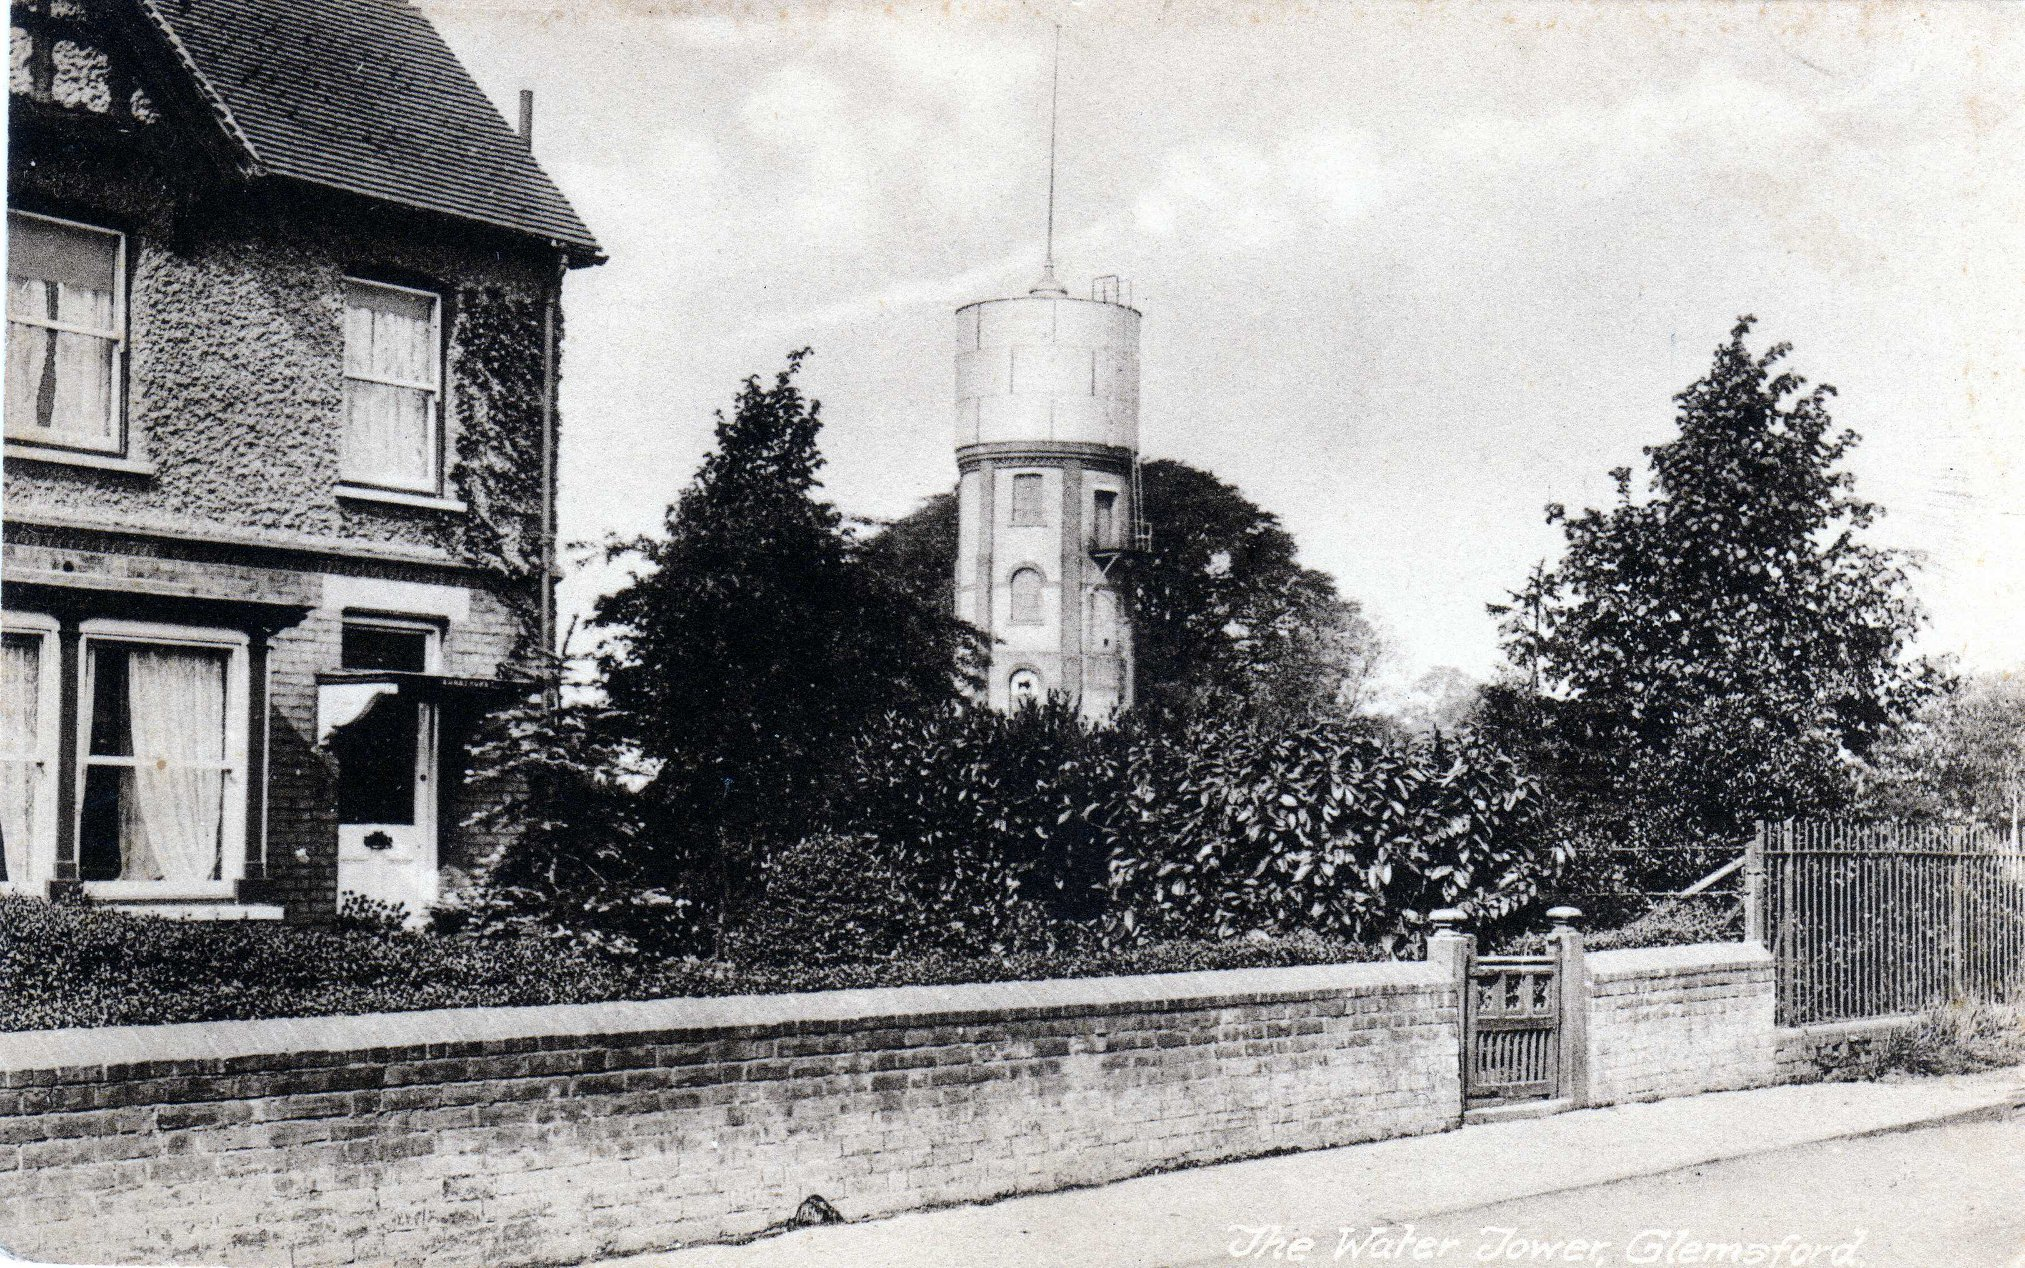 Glemsford Water Tower